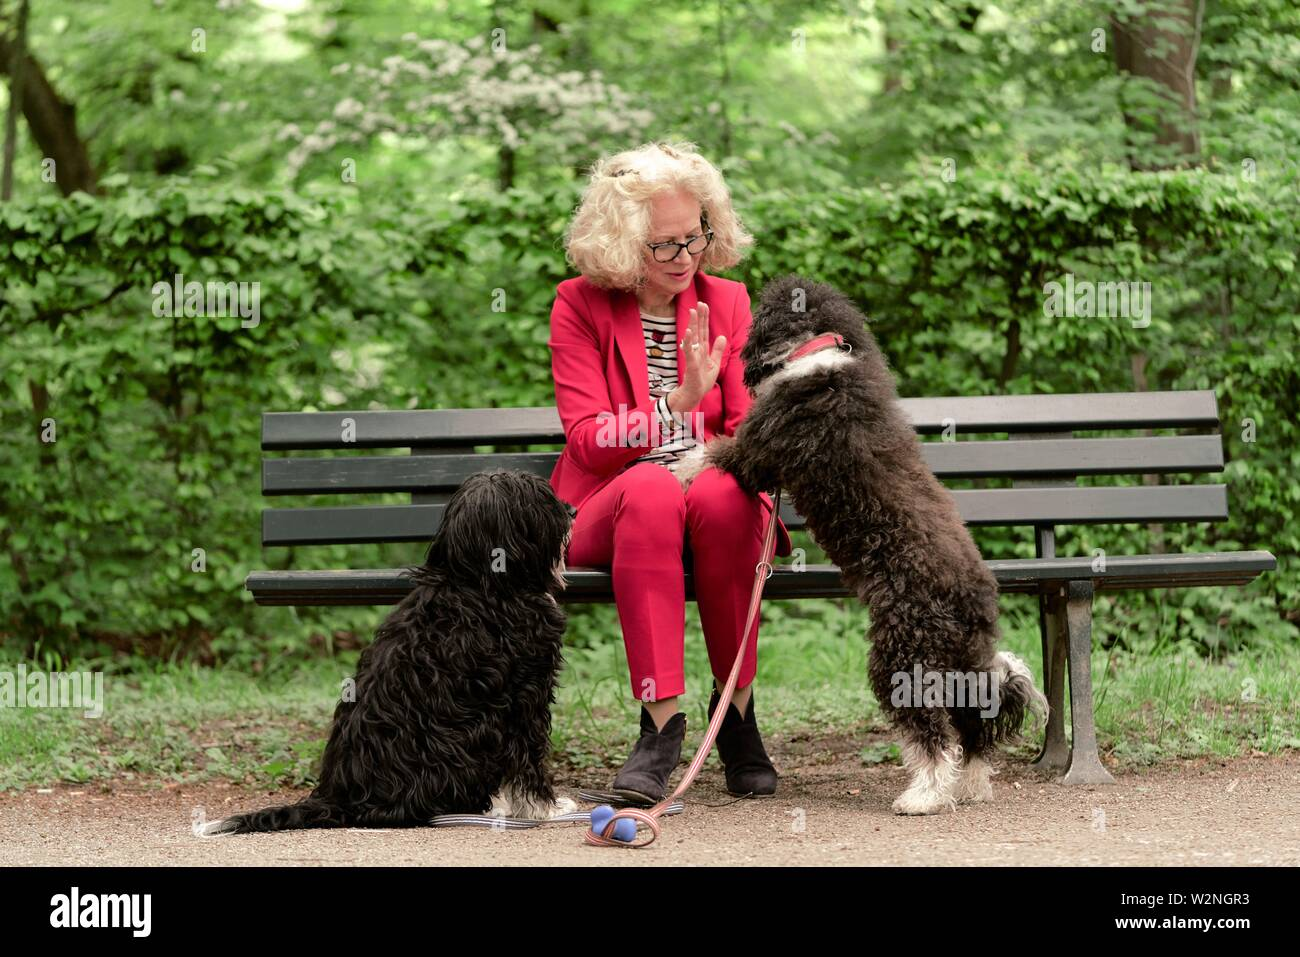 senior woman (67 years old) sitting on bench with dogs in park, in Nymphenburg, Munich, Germany. - Stock Image